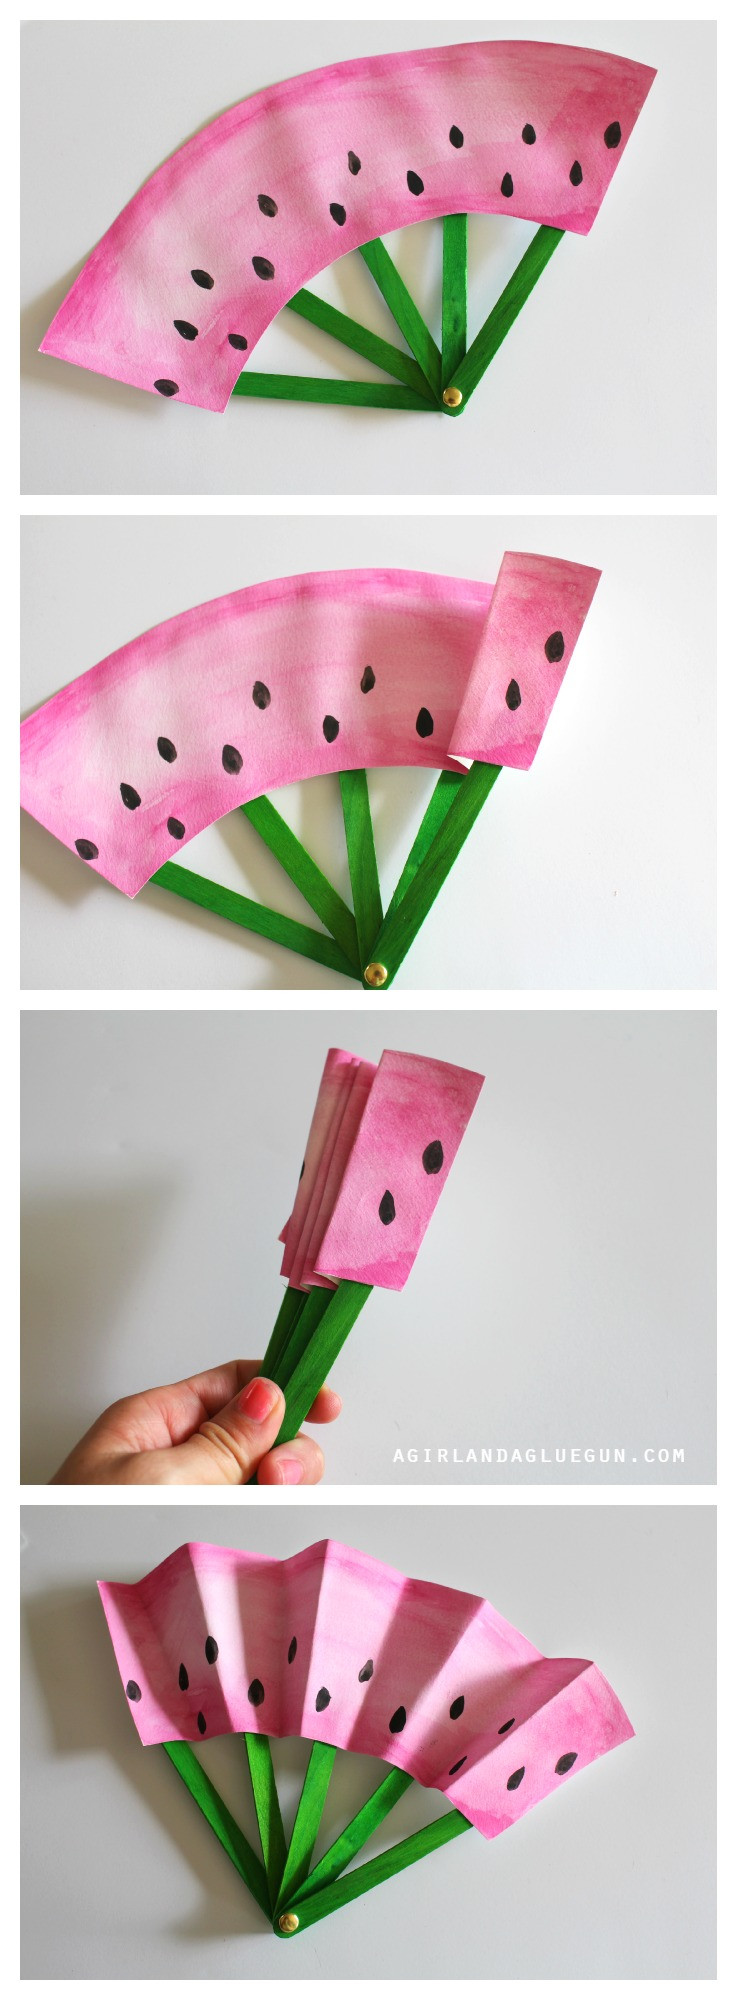 Best ideas about Arts And Crafts Ideas For Kids . Save or Pin DIY Fruit Fans Kids Craft The Idea Room Now.